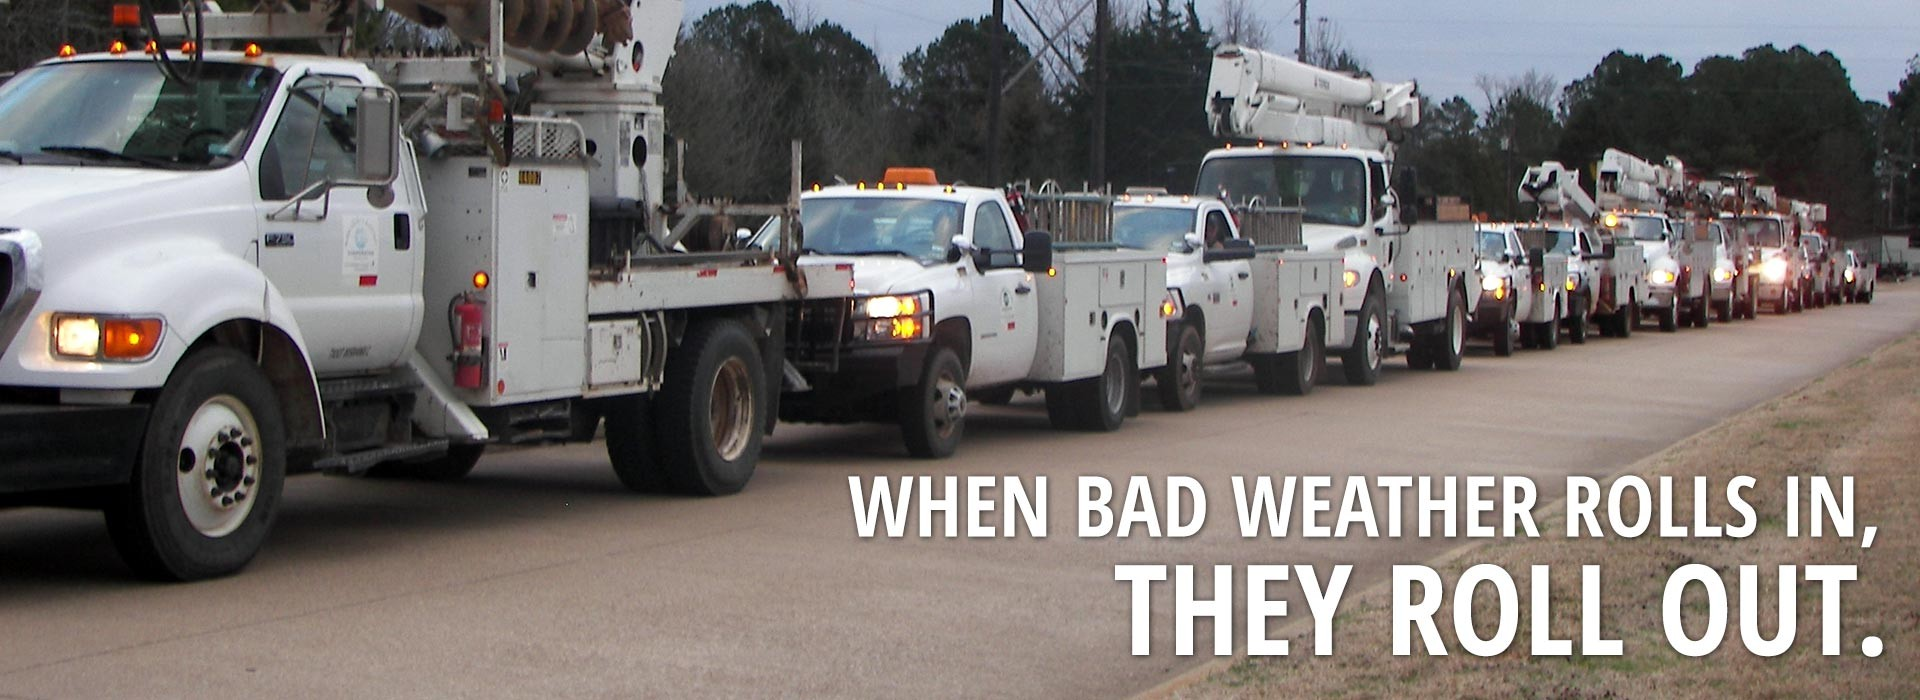 When the bad weather rolls in, they roll out. (Power trucks)